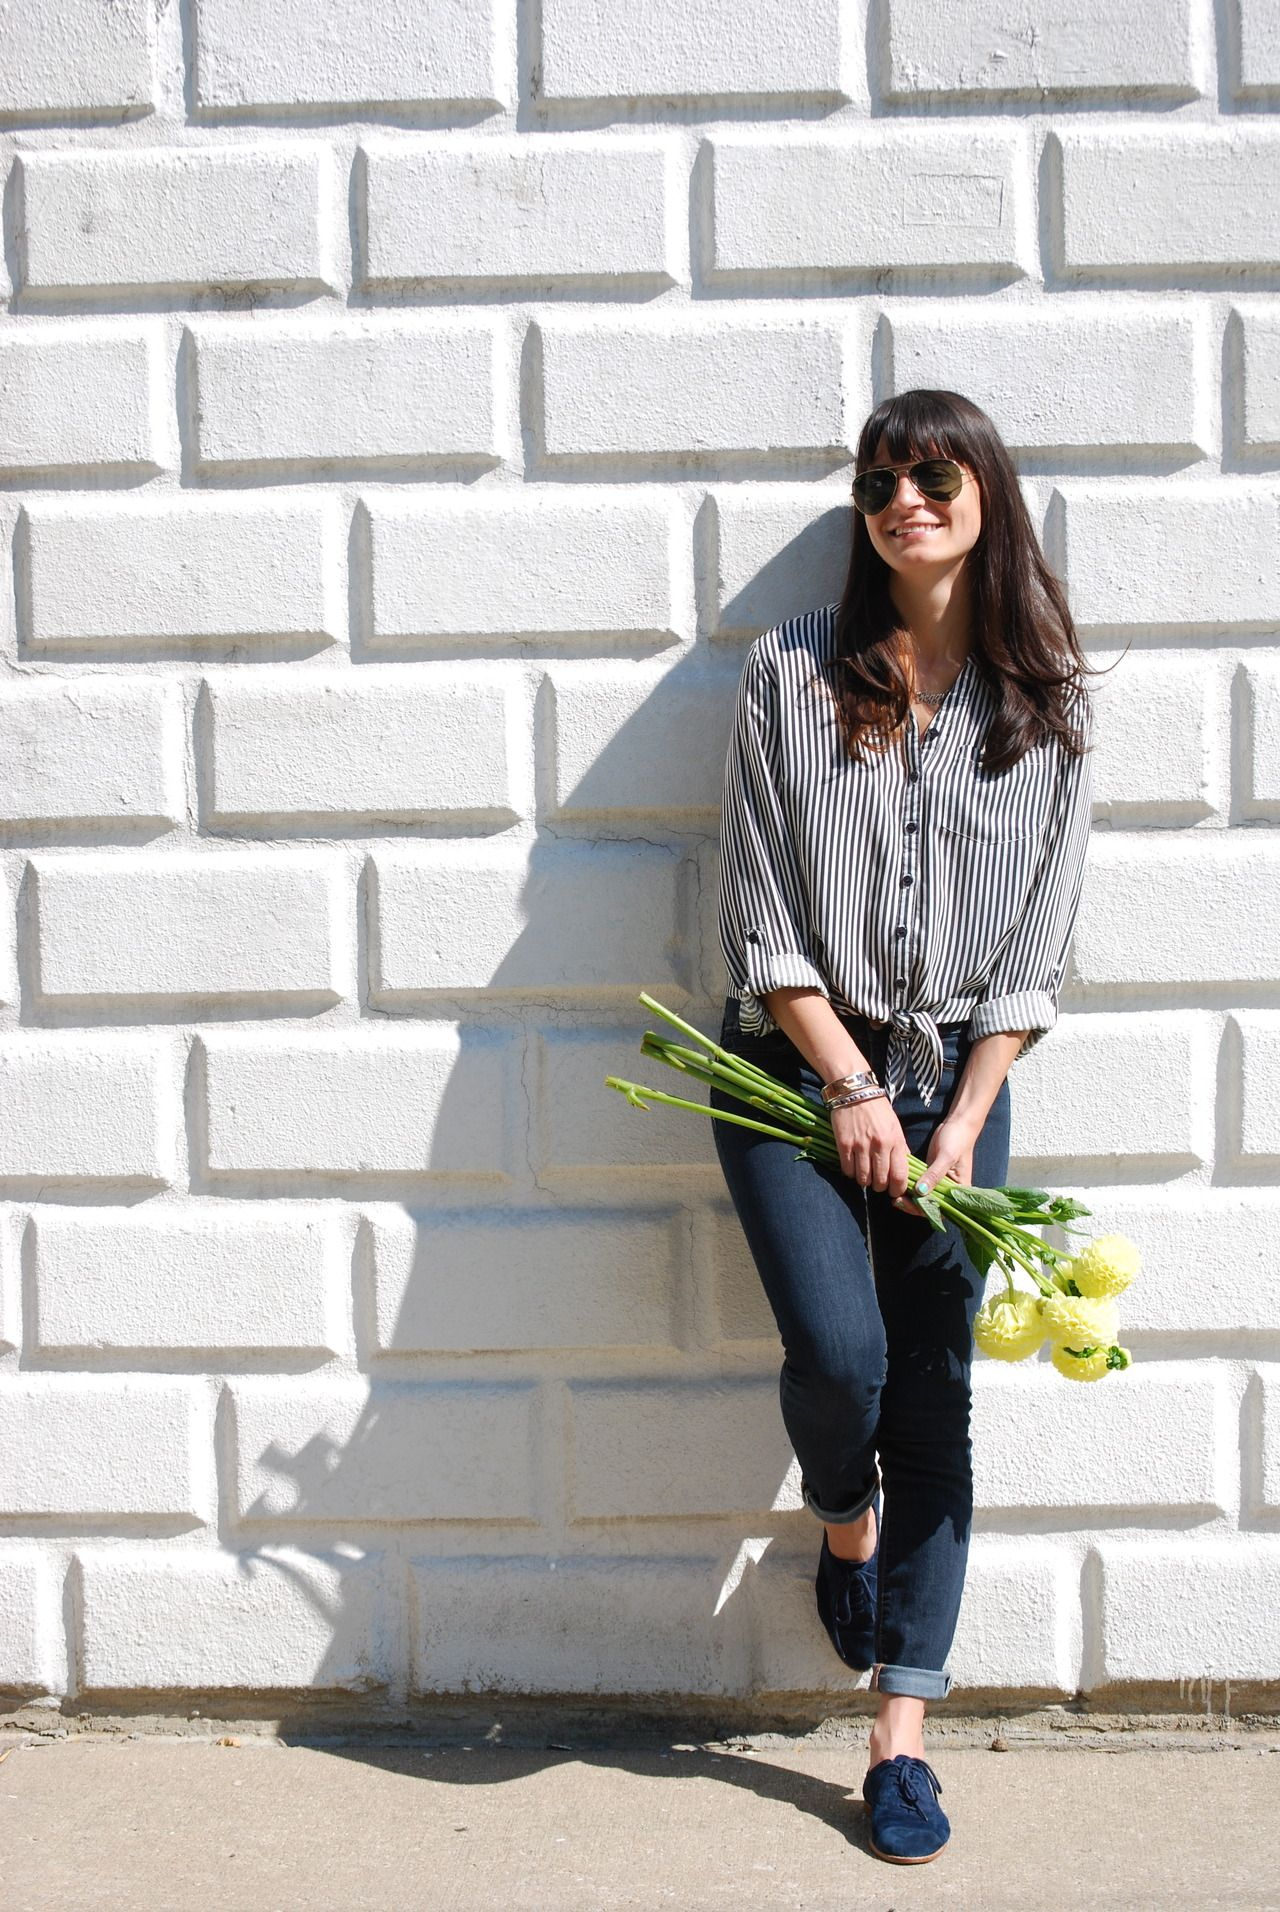 A pair of Gap jeans and shoes as featured on the blog @Peggy.